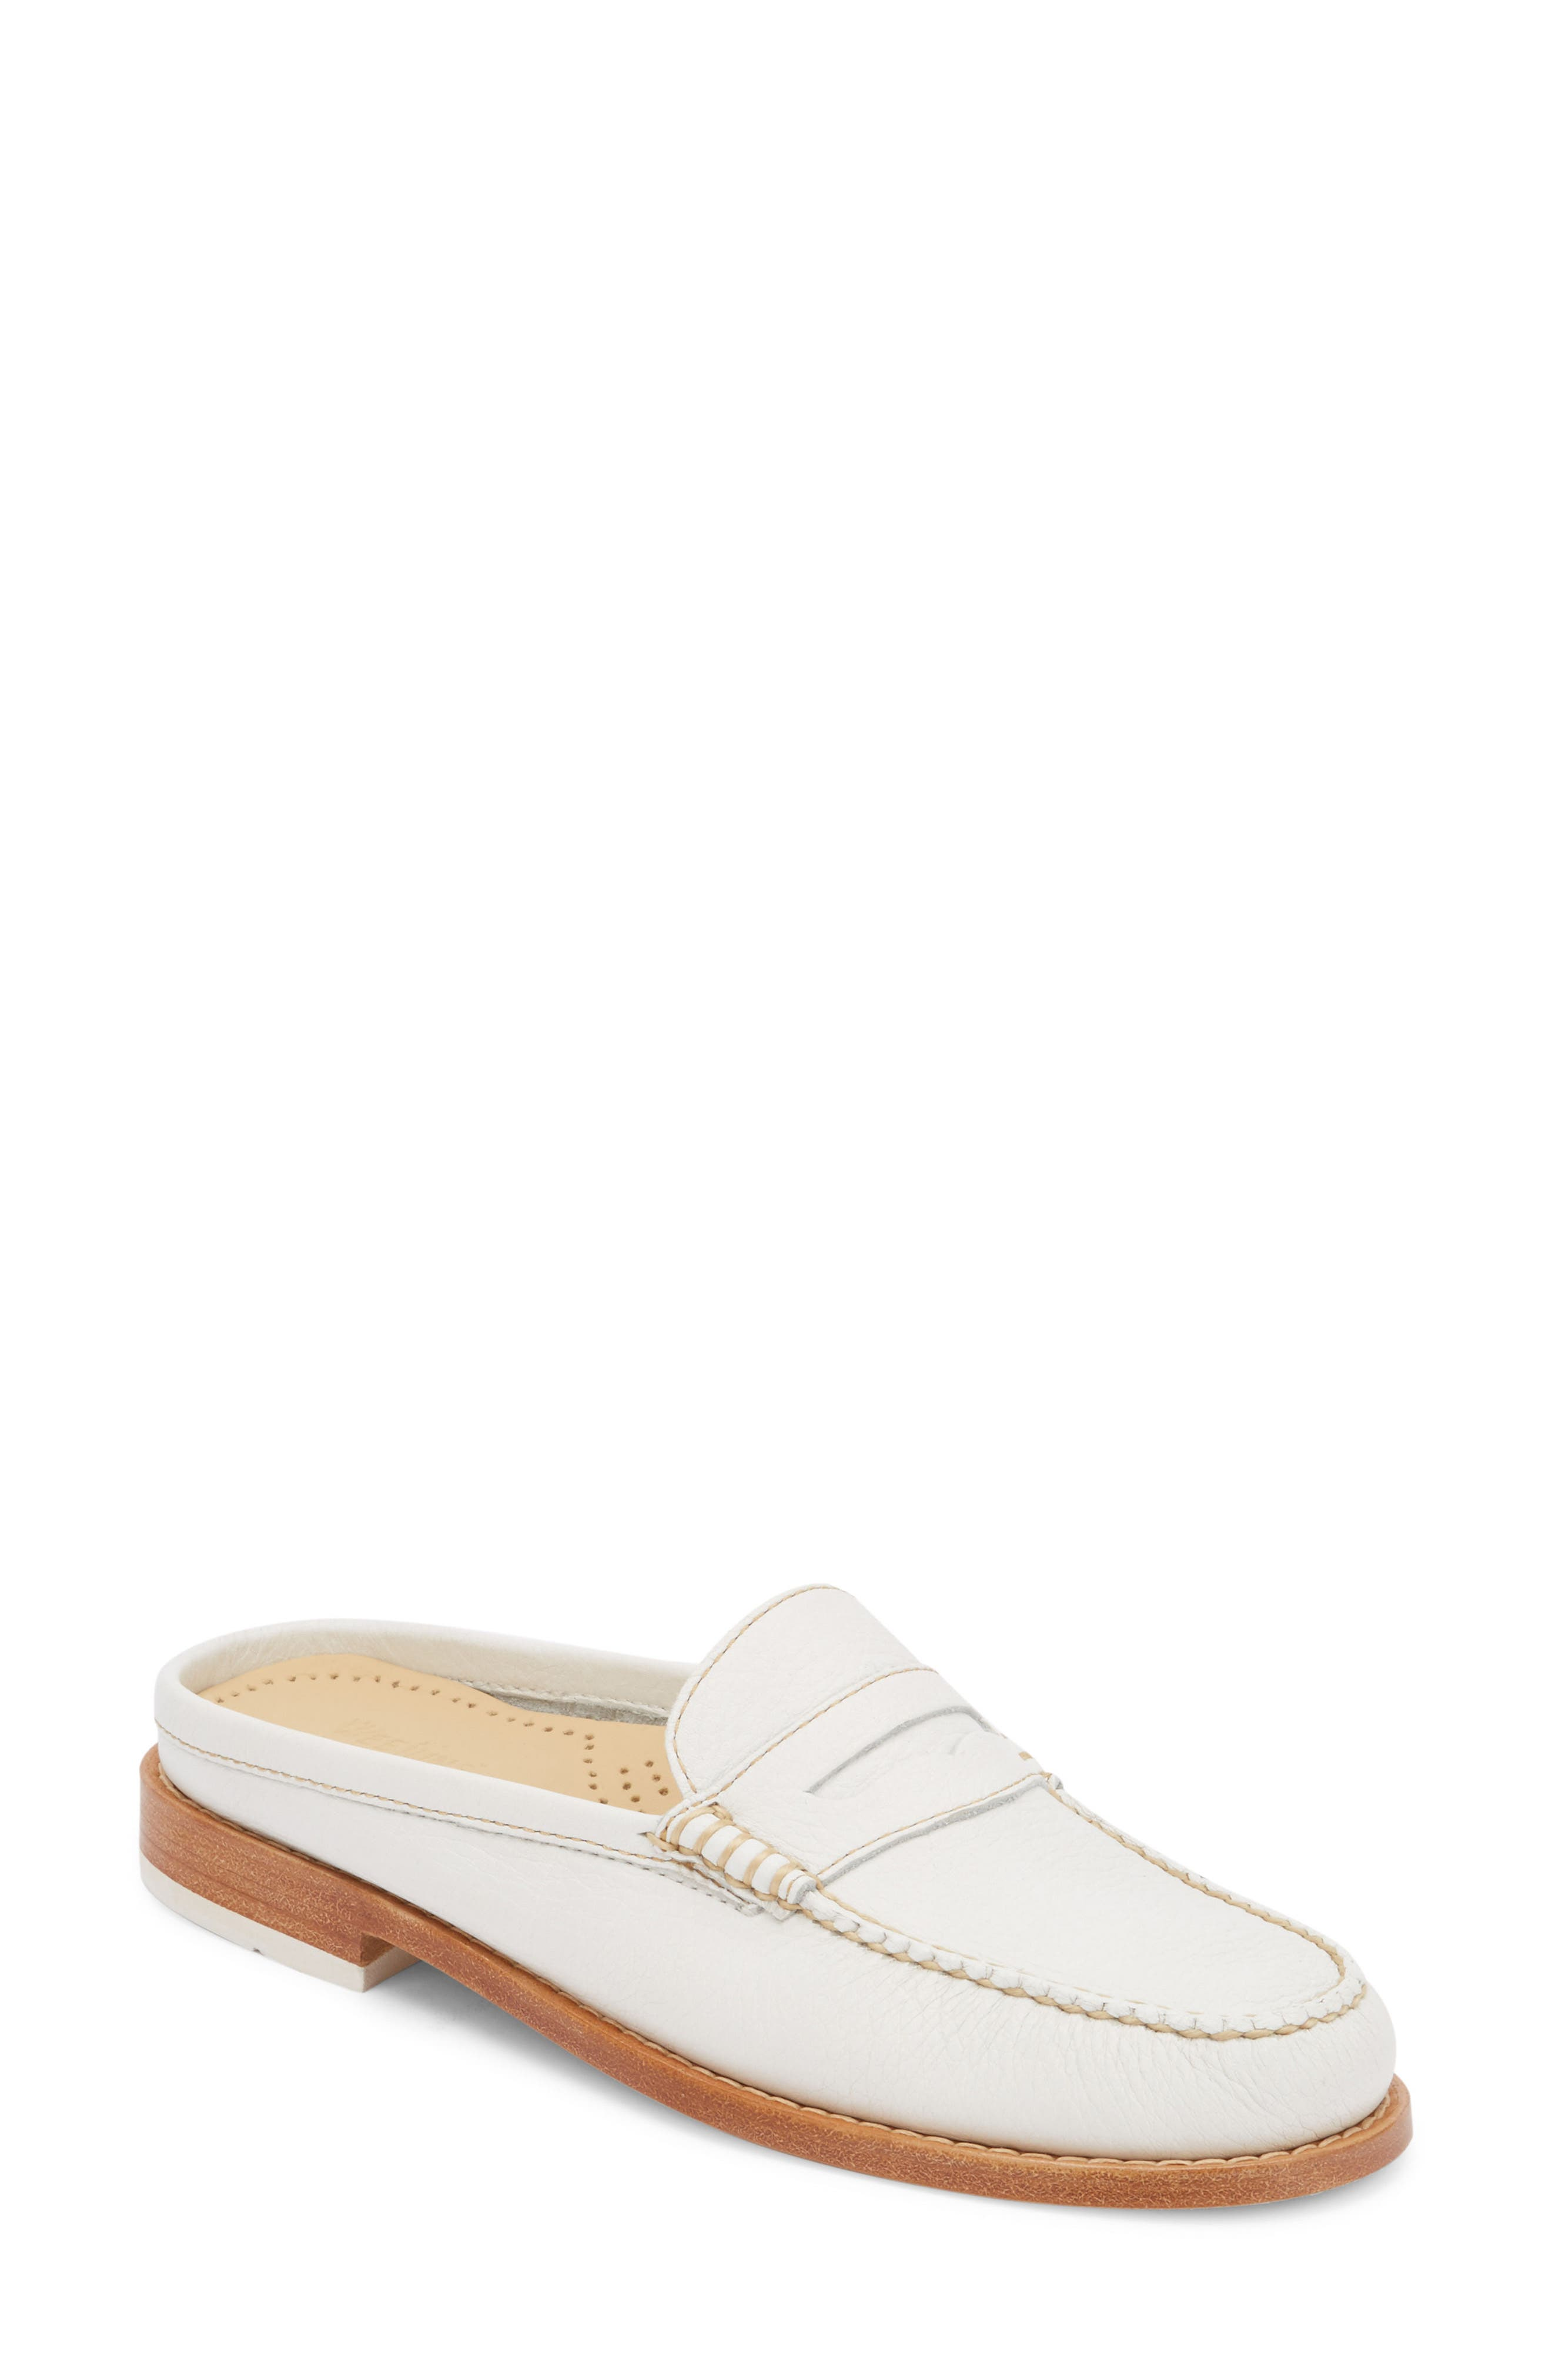 Wynn Loafer Mule,                         Main,                         color, WHITE/ WHITE LEATHER